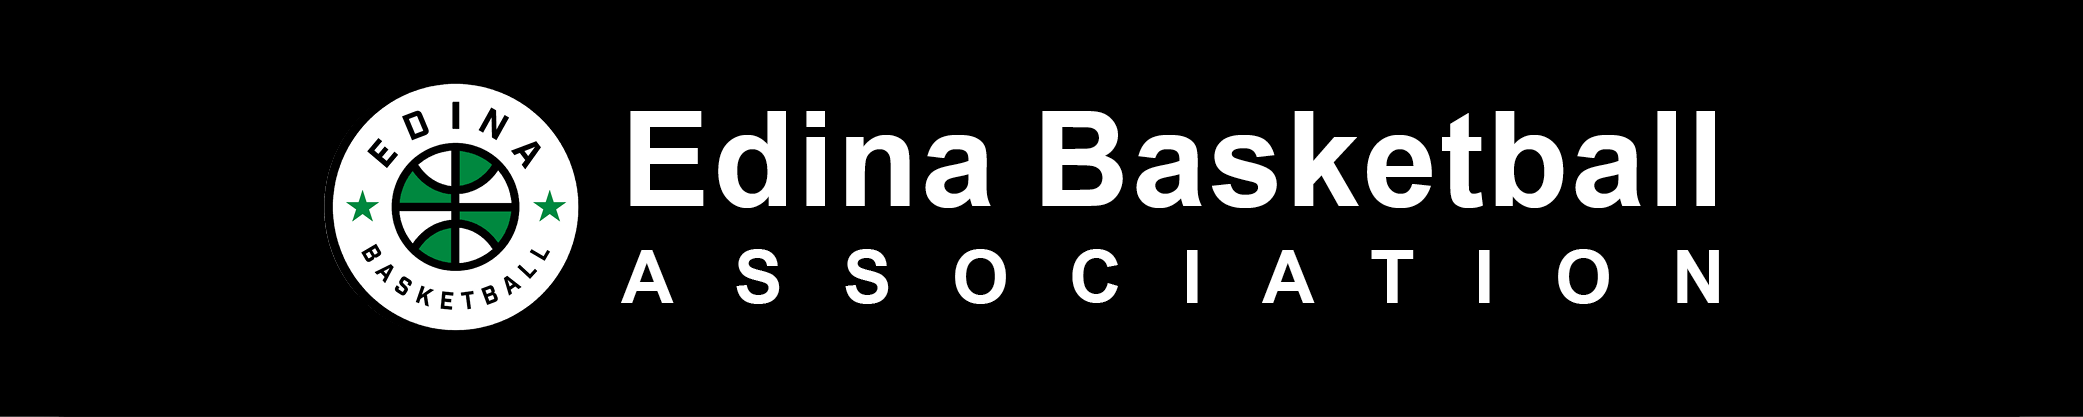 Edina Basketball Association, Basketball, Point, Court